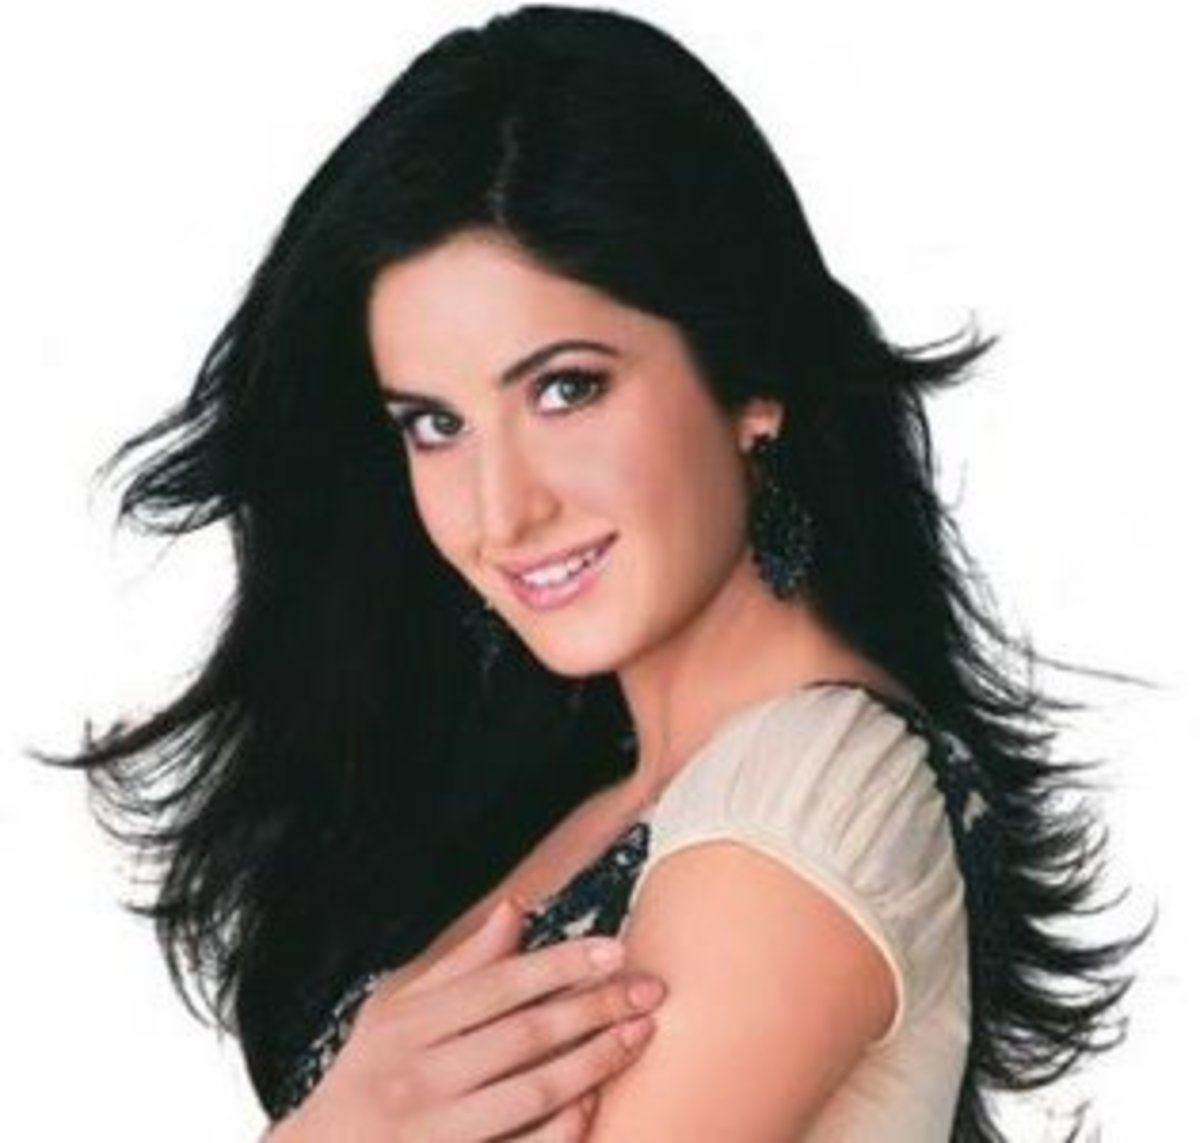 Katrina Kaif is one of the most popular actresses in the Bollywood. She has many super hit films to her credit and has acted with superstars like Salman Khan, Sharukh Khan, Aamir Khan and Akshay Kumar.